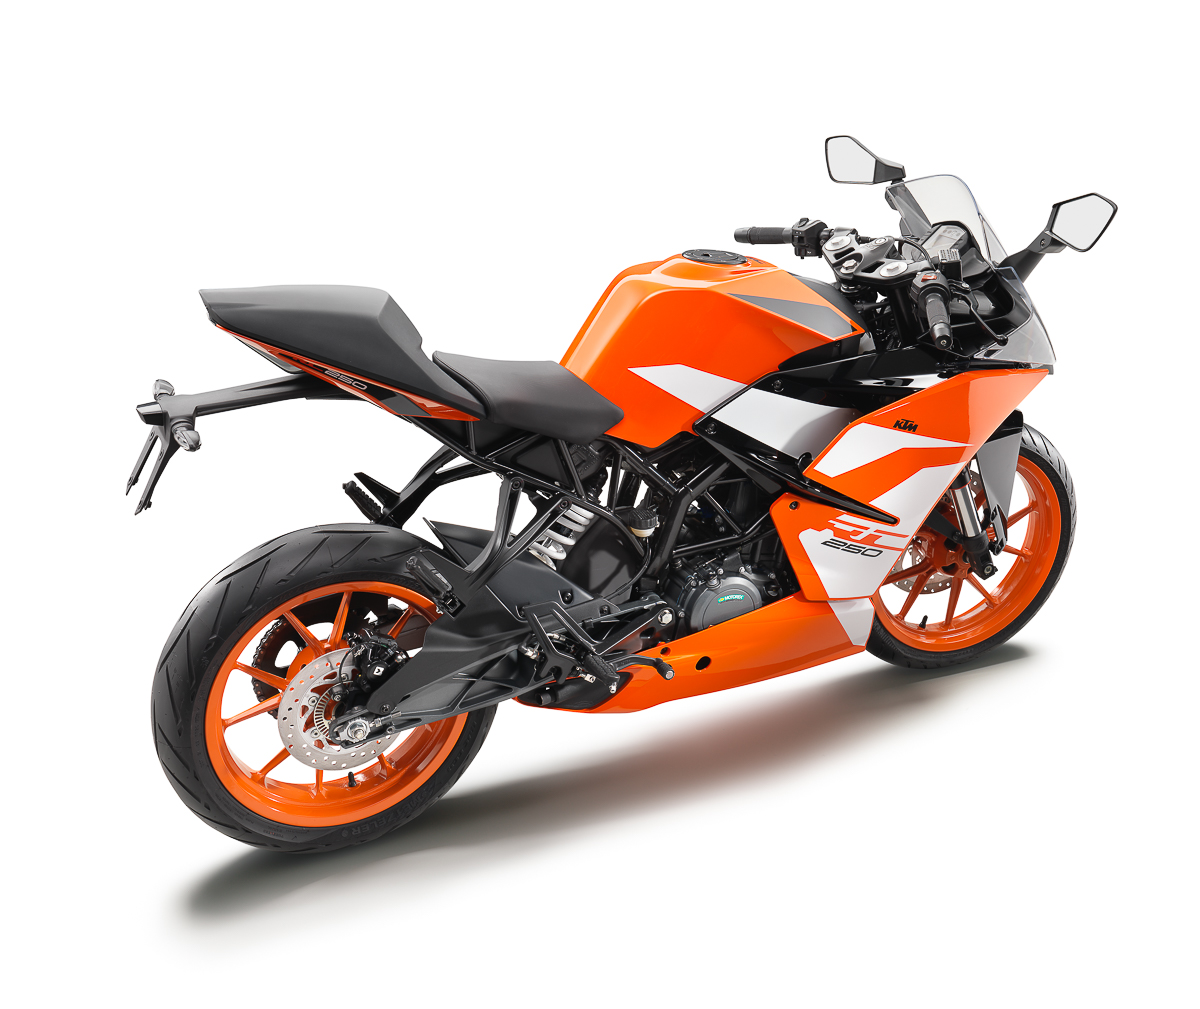 2017 ktm rc 250 ktm rc 390 officially available in malaysia from rm22 790 bikesrepublic. Black Bedroom Furniture Sets. Home Design Ideas